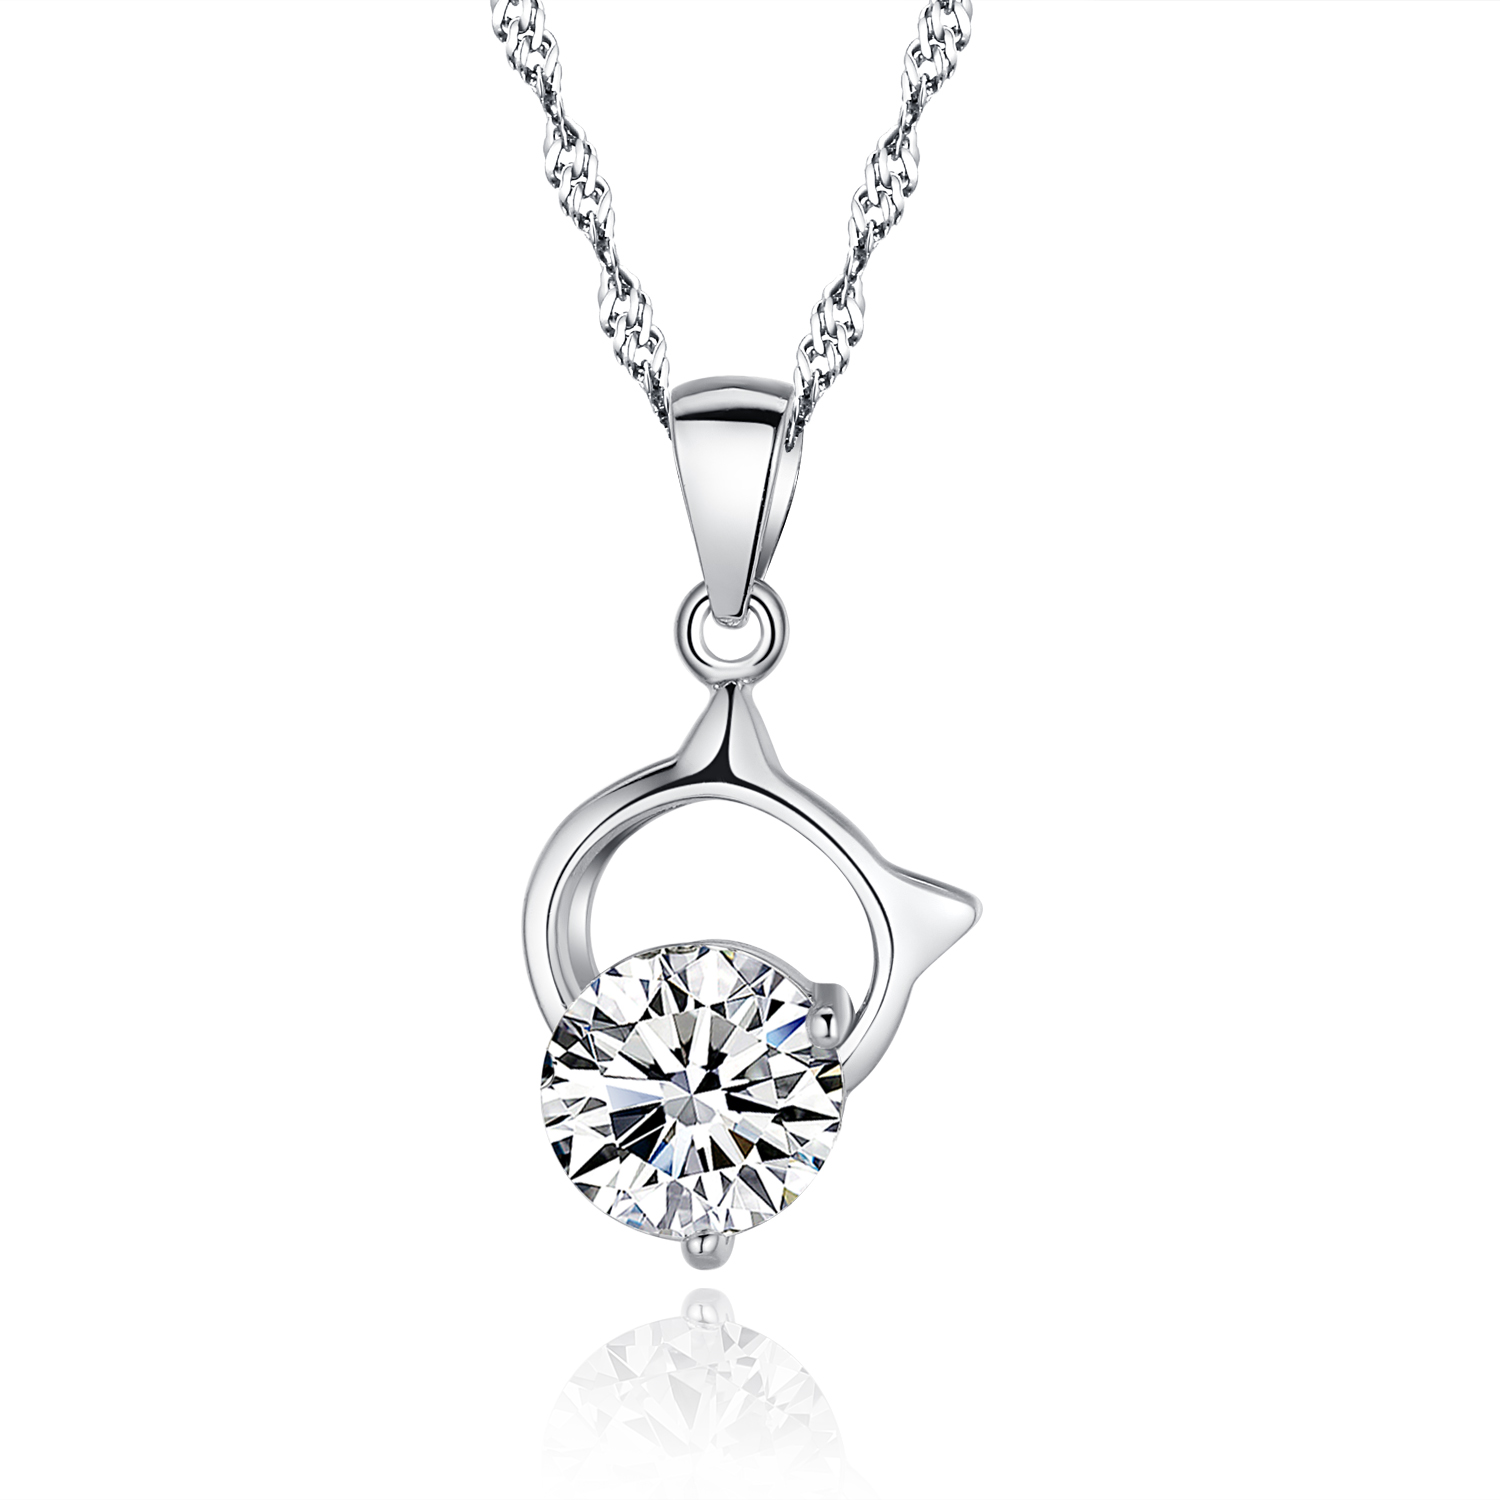 Sterling 925 silver pendant necklace jewelry set with kitty cat head sterling 925 silver pendant necklace jewelry set with kitty cat head pendentif paved cubic zirconia cz aloadofball